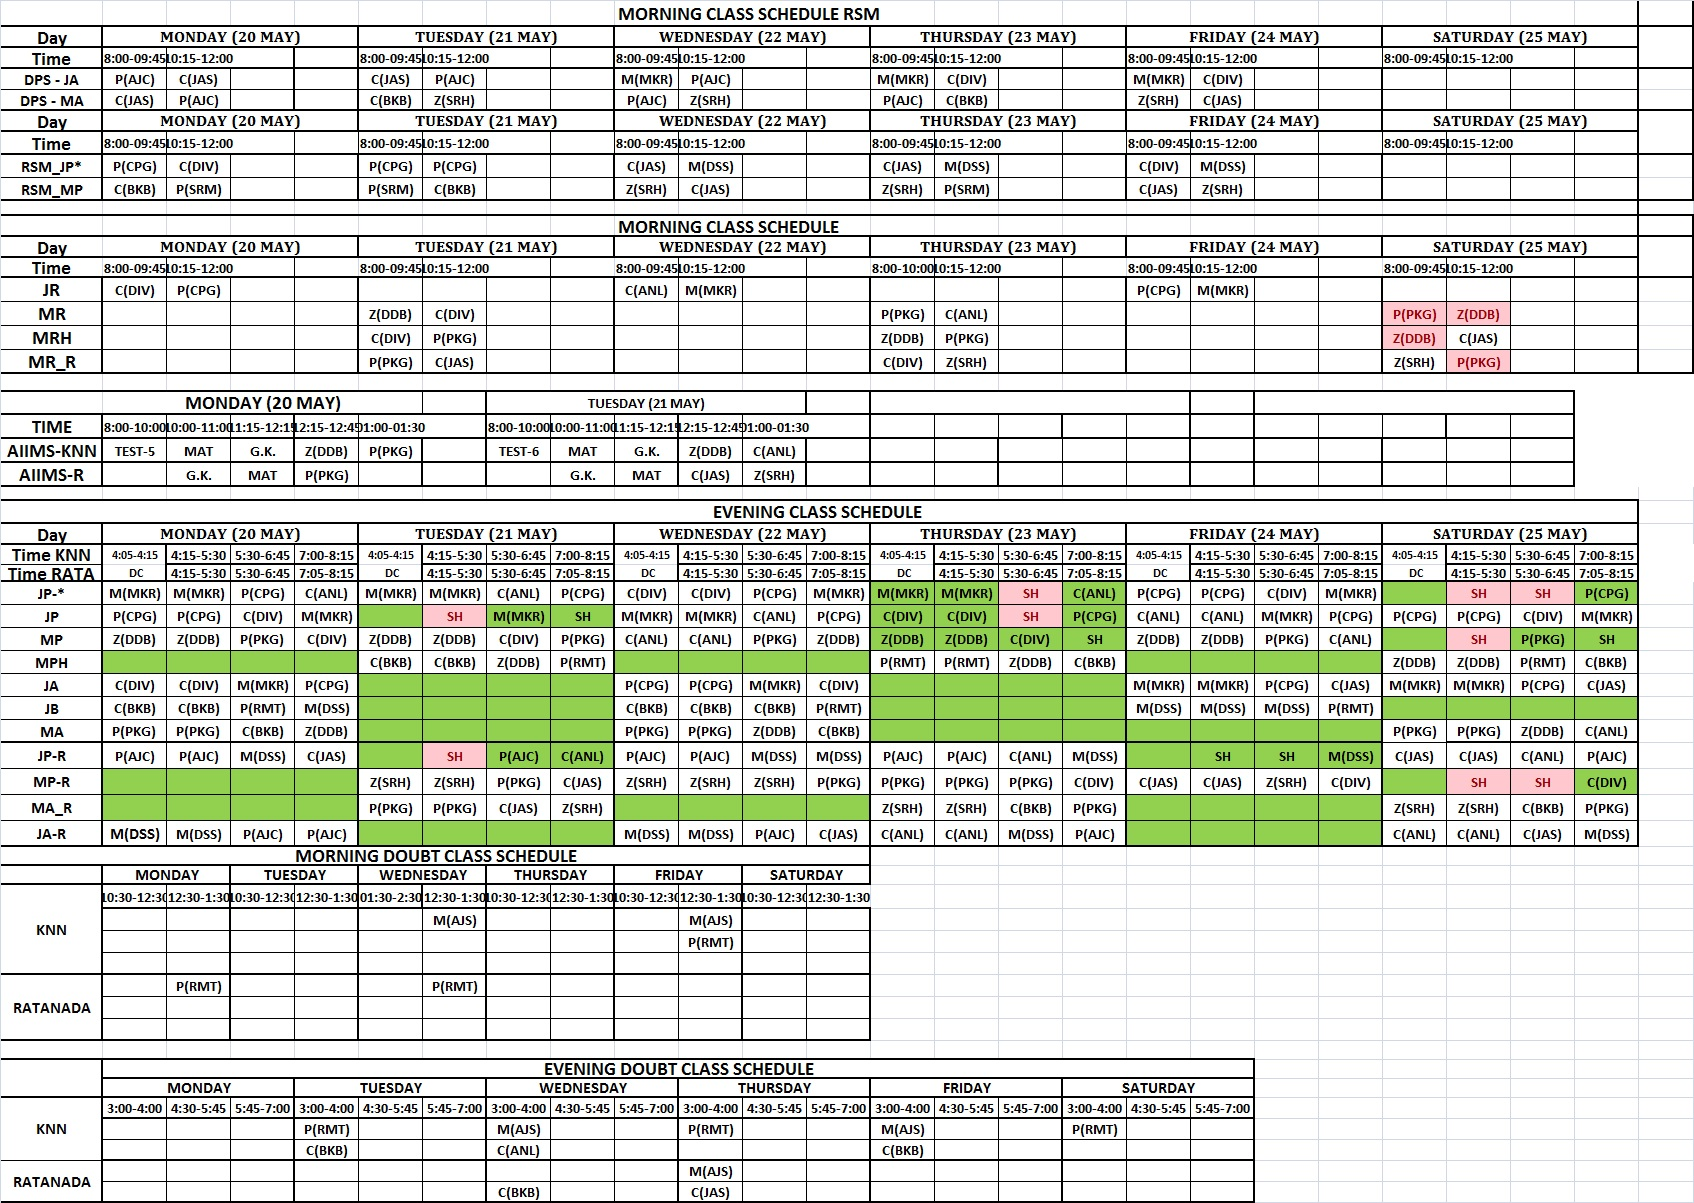 YCCP time table 20.05.2019 to 25.05.2019